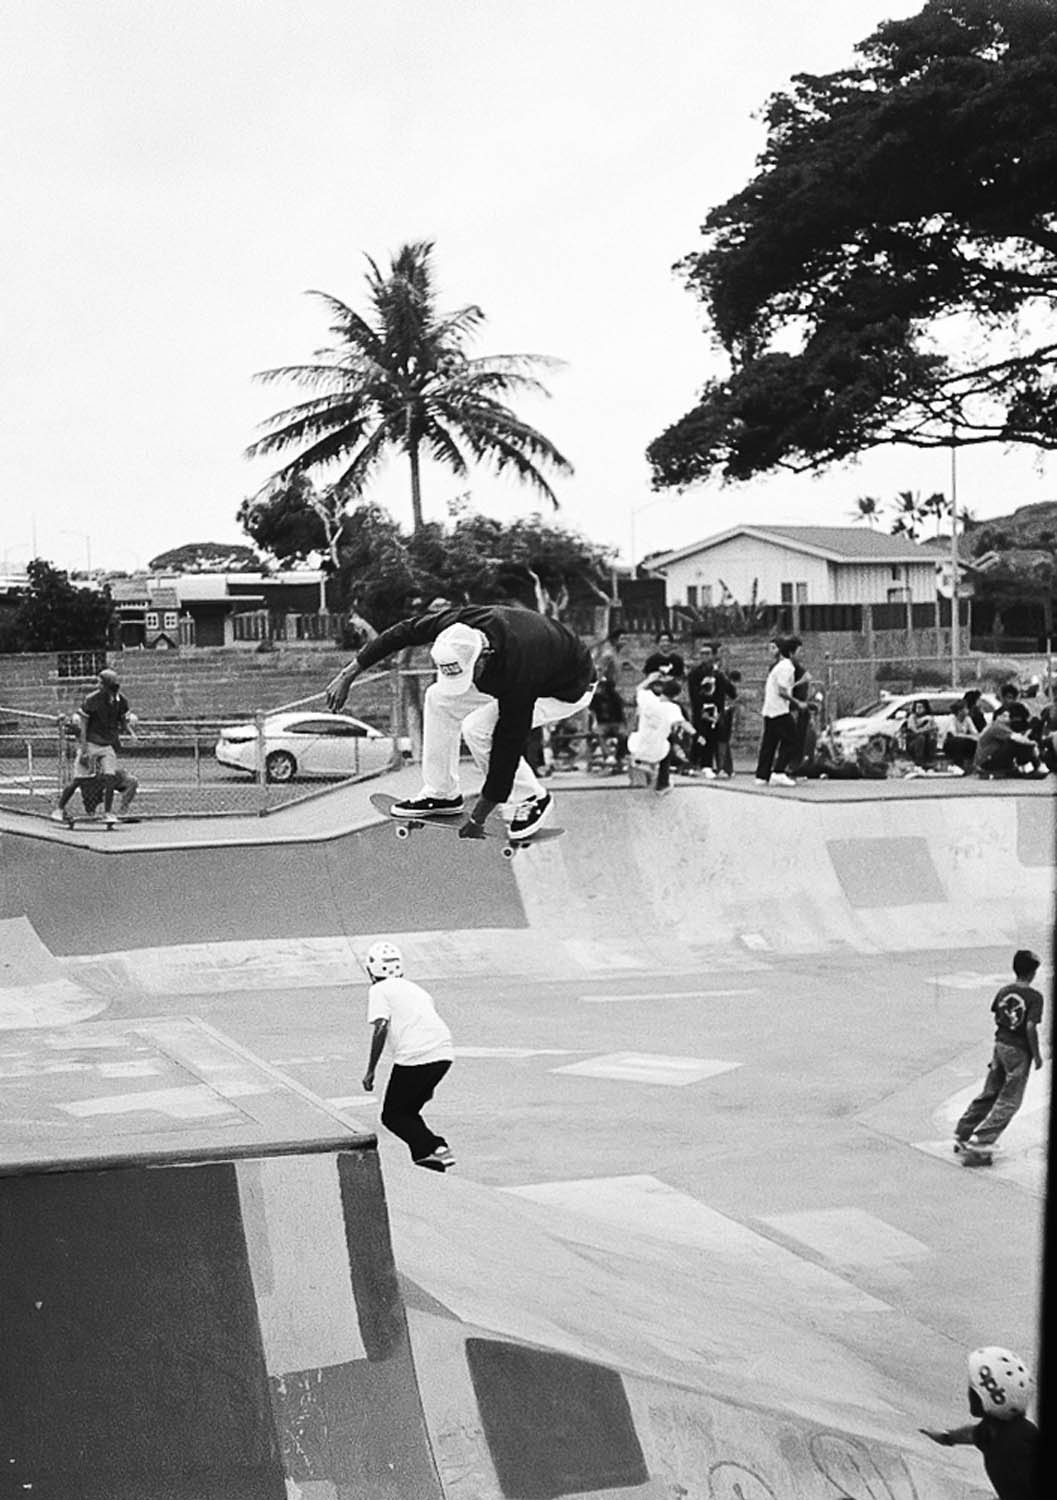 This was my first time shooting Ortho Plus. I shot it at ISO 100 on my Olympus PenFT at the RVCA Skate event in Hawaii.